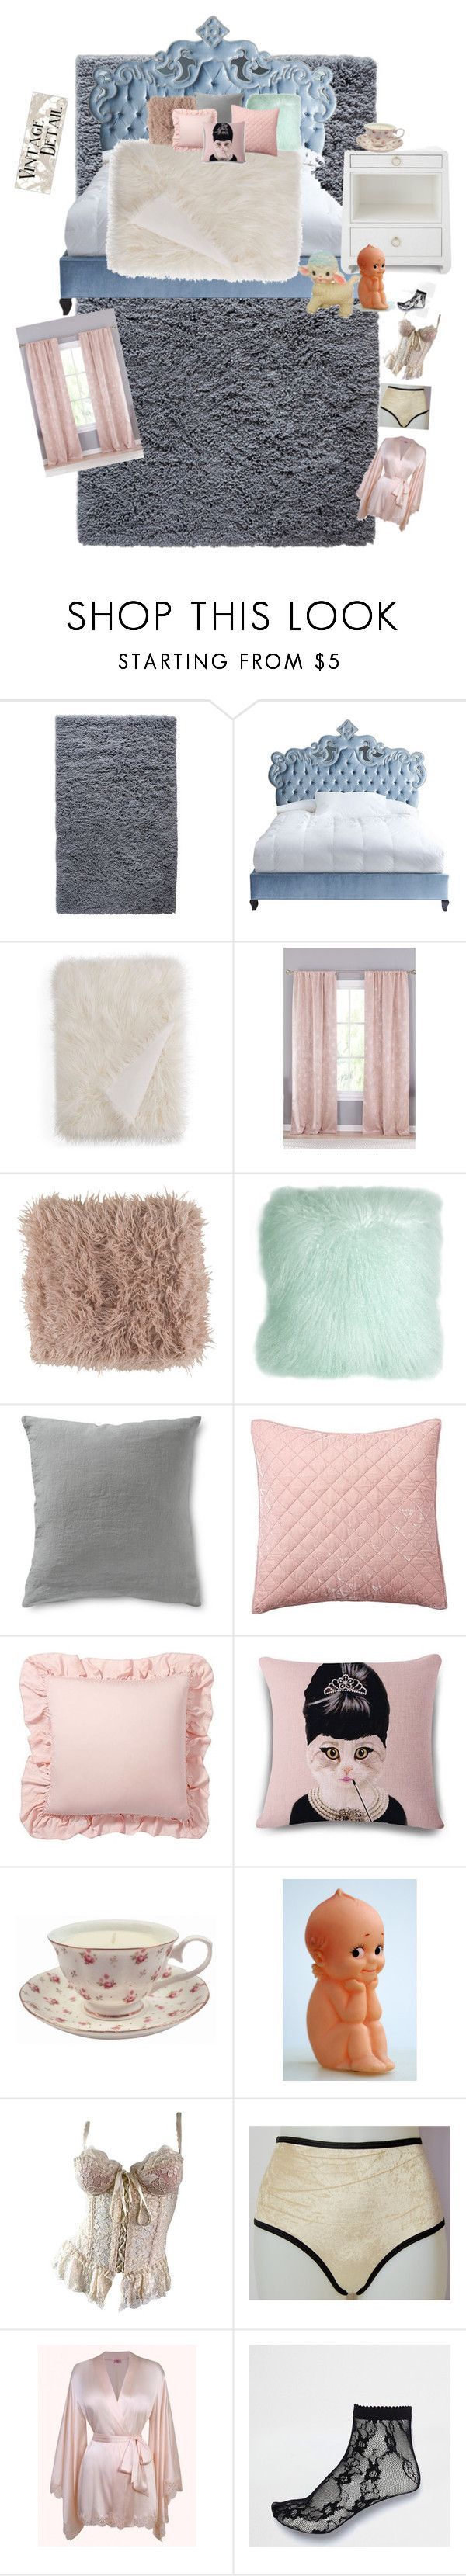 """""""Melanie martinez inspired room❤"""" by izzymaster ❤ liked on Polyvore featuring interior, interiors, interior design, home, home decor, interior decorating, Haute House, Hudson Park, Lala + Bash and Bungalow 5"""